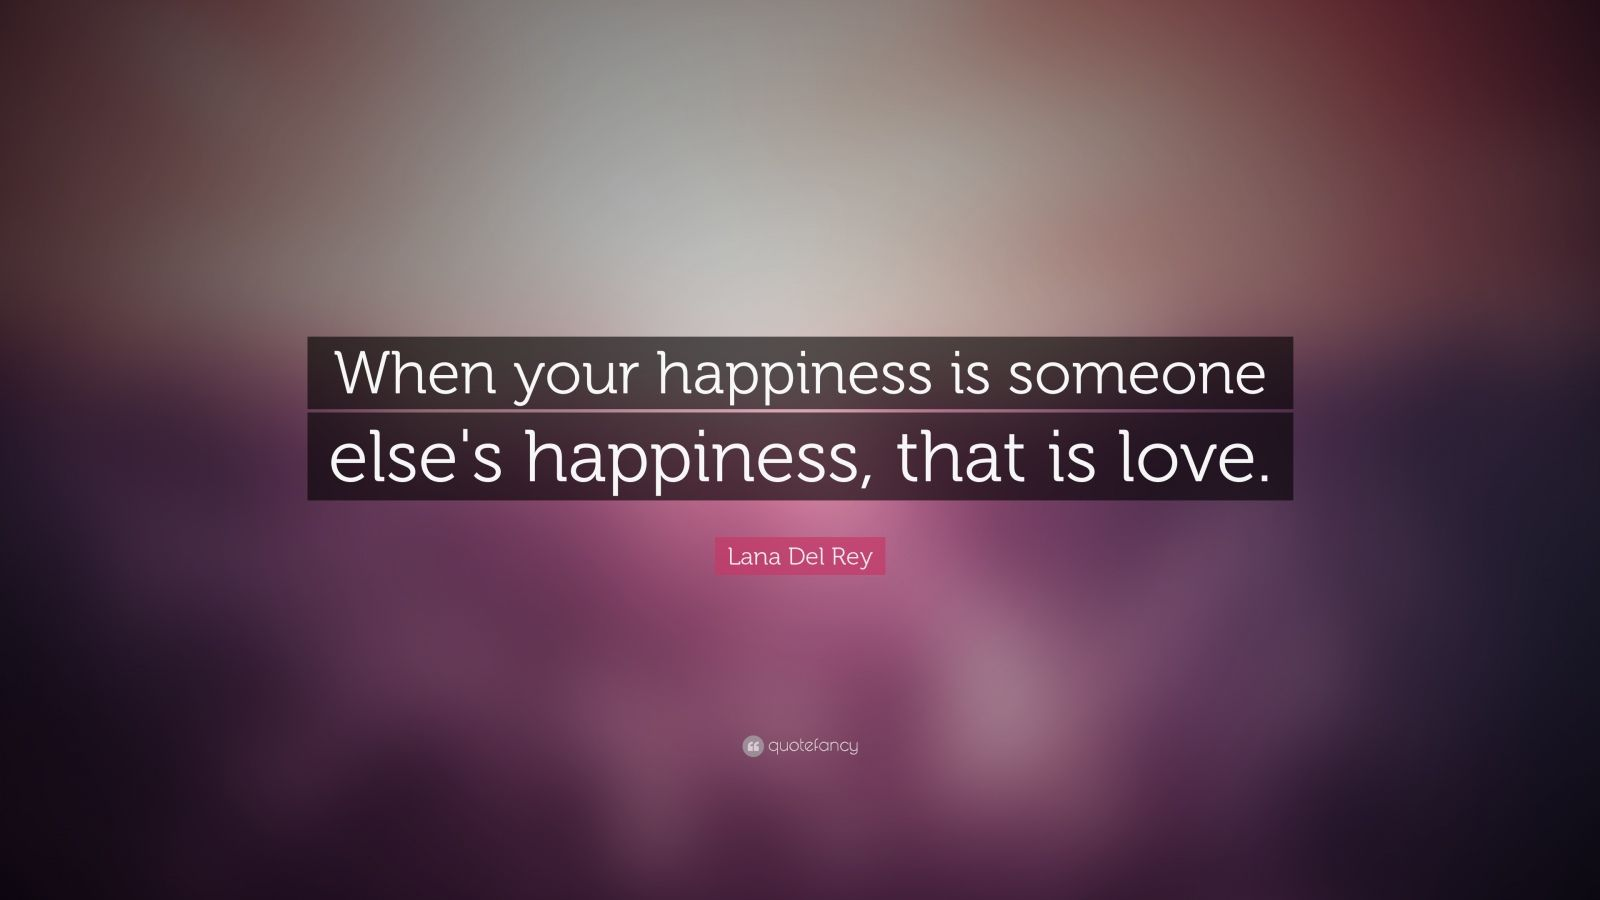 """Lana Del Rey Quote: """"When your happiness is someone else's happiness, that is love."""""""